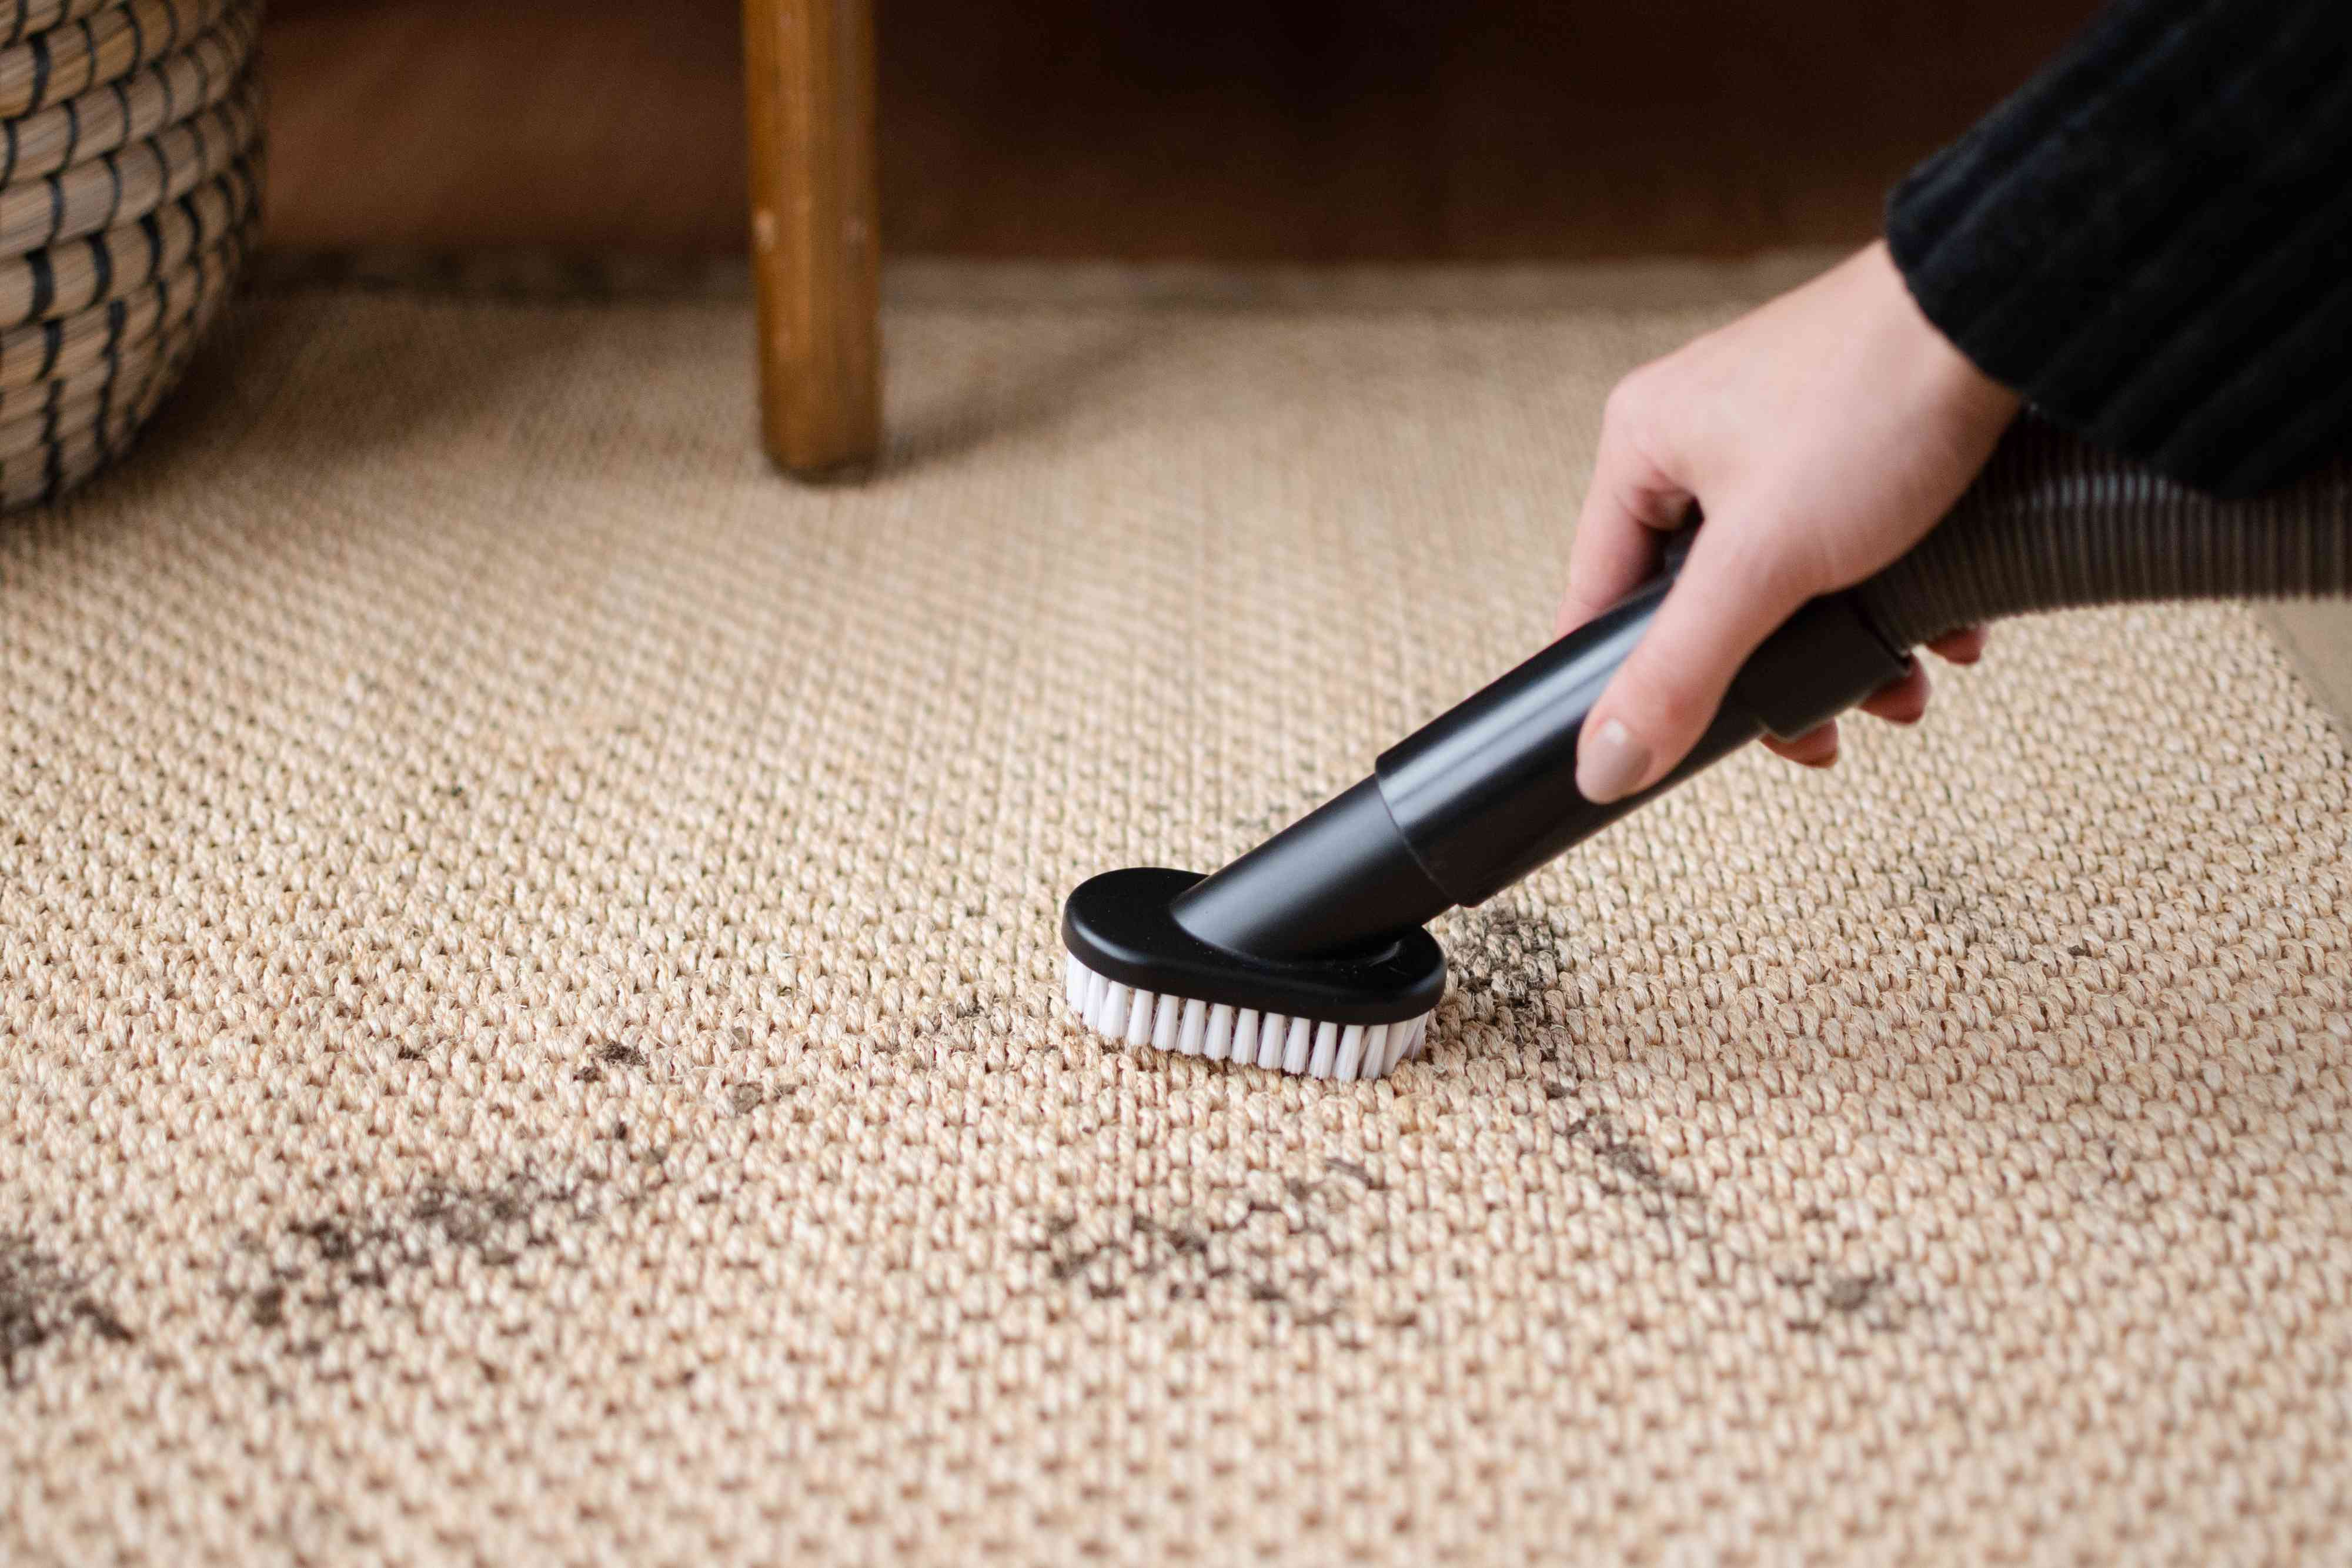 Tan sisal rug with loose dirt being vacuumed with hose attachment closeup